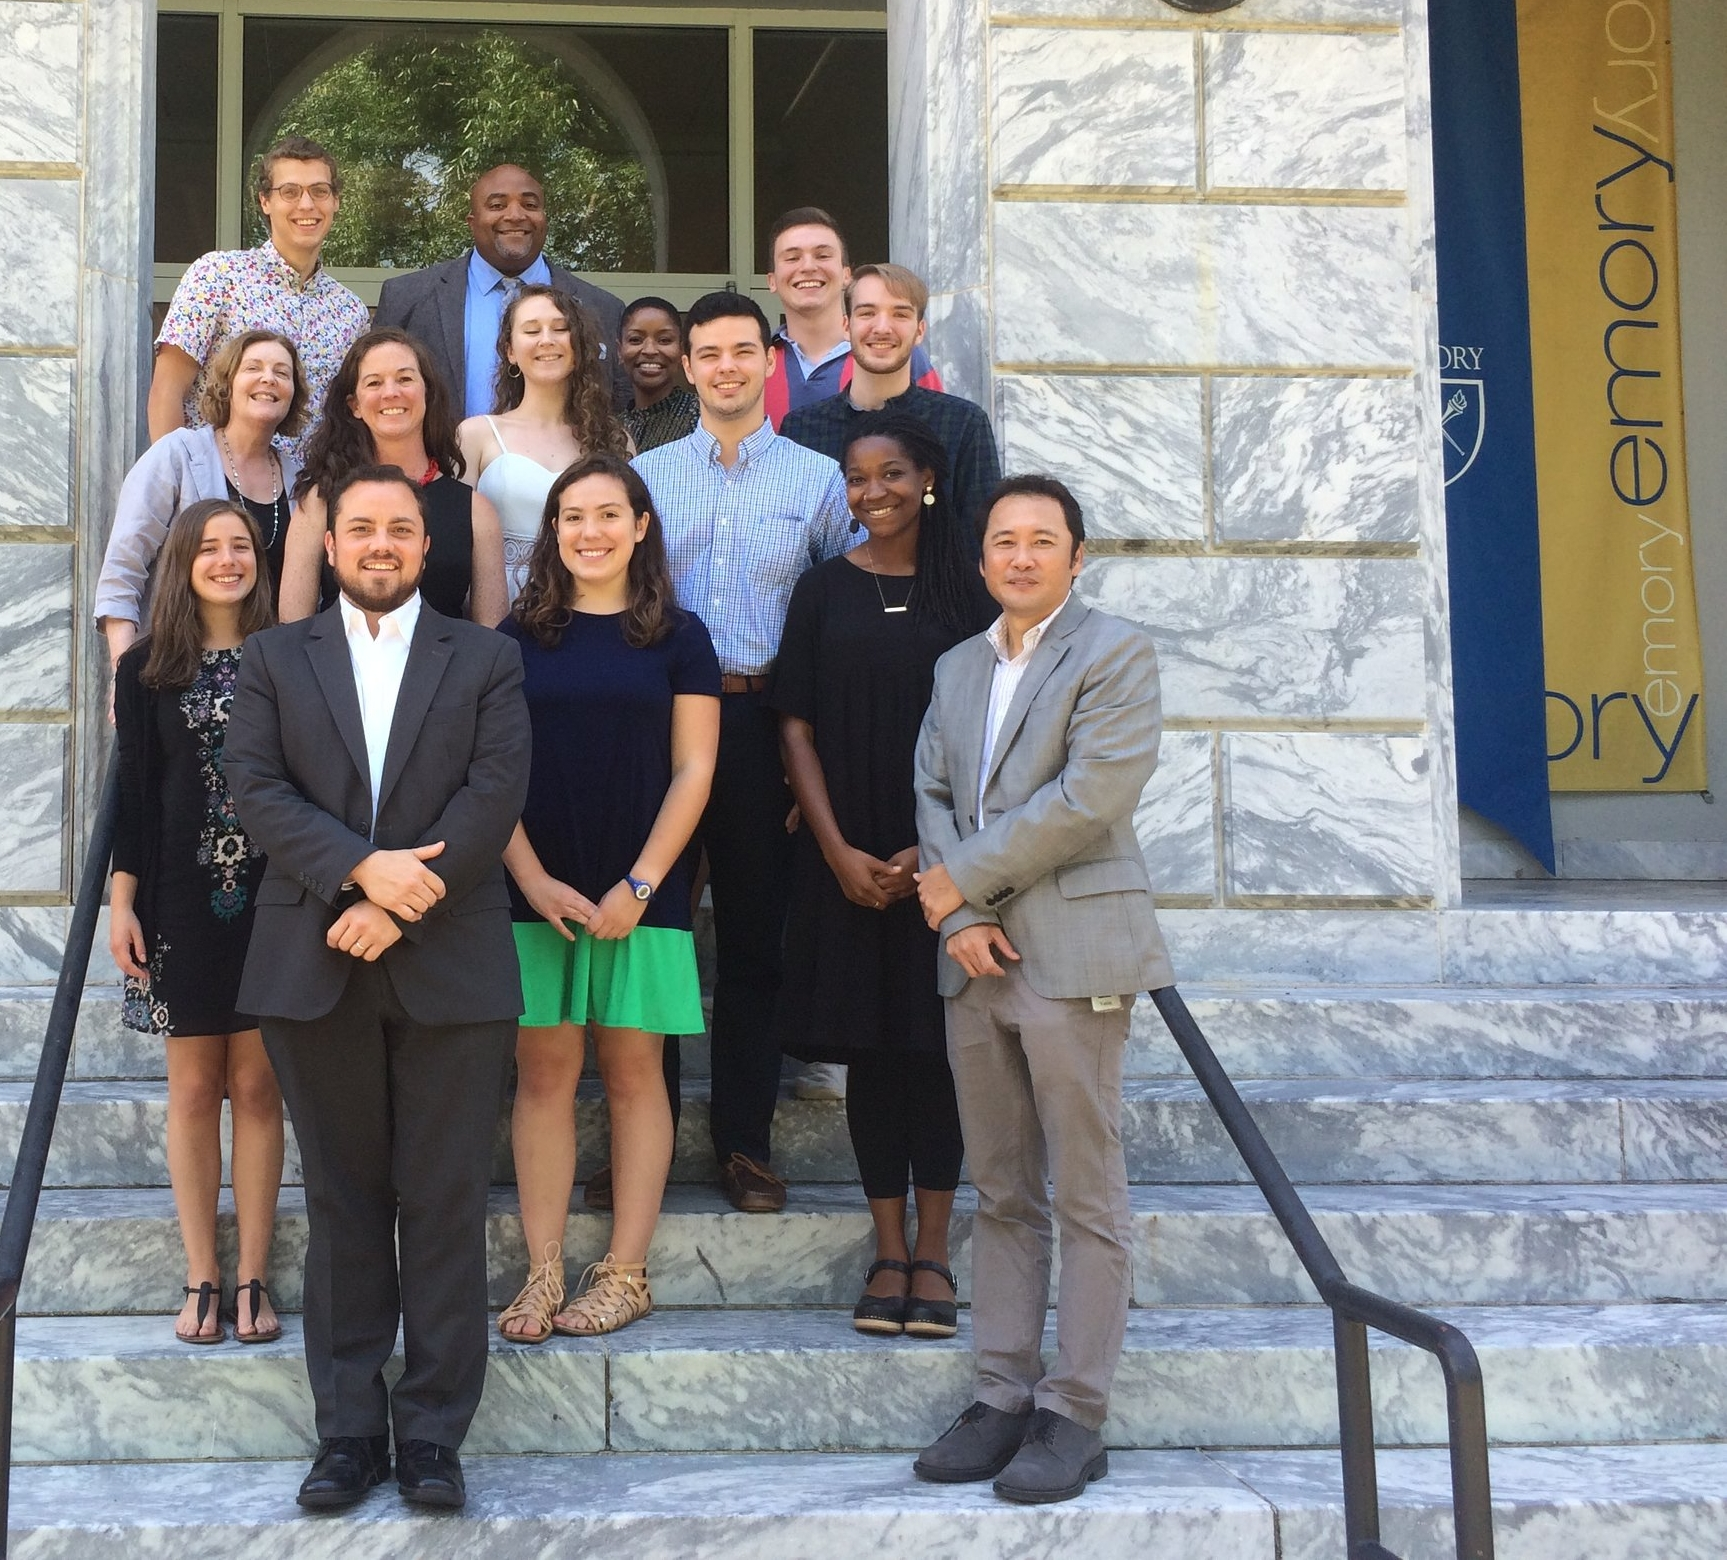 The 2018 CBSC Fellows, partners and two alumni enjoyed a luncheon hosted by Emory President Claire Sterk on July 22nd, 2018. All discussed the work of the CBSC and its' connections to both the Emory mission and the growth of new leaders. -